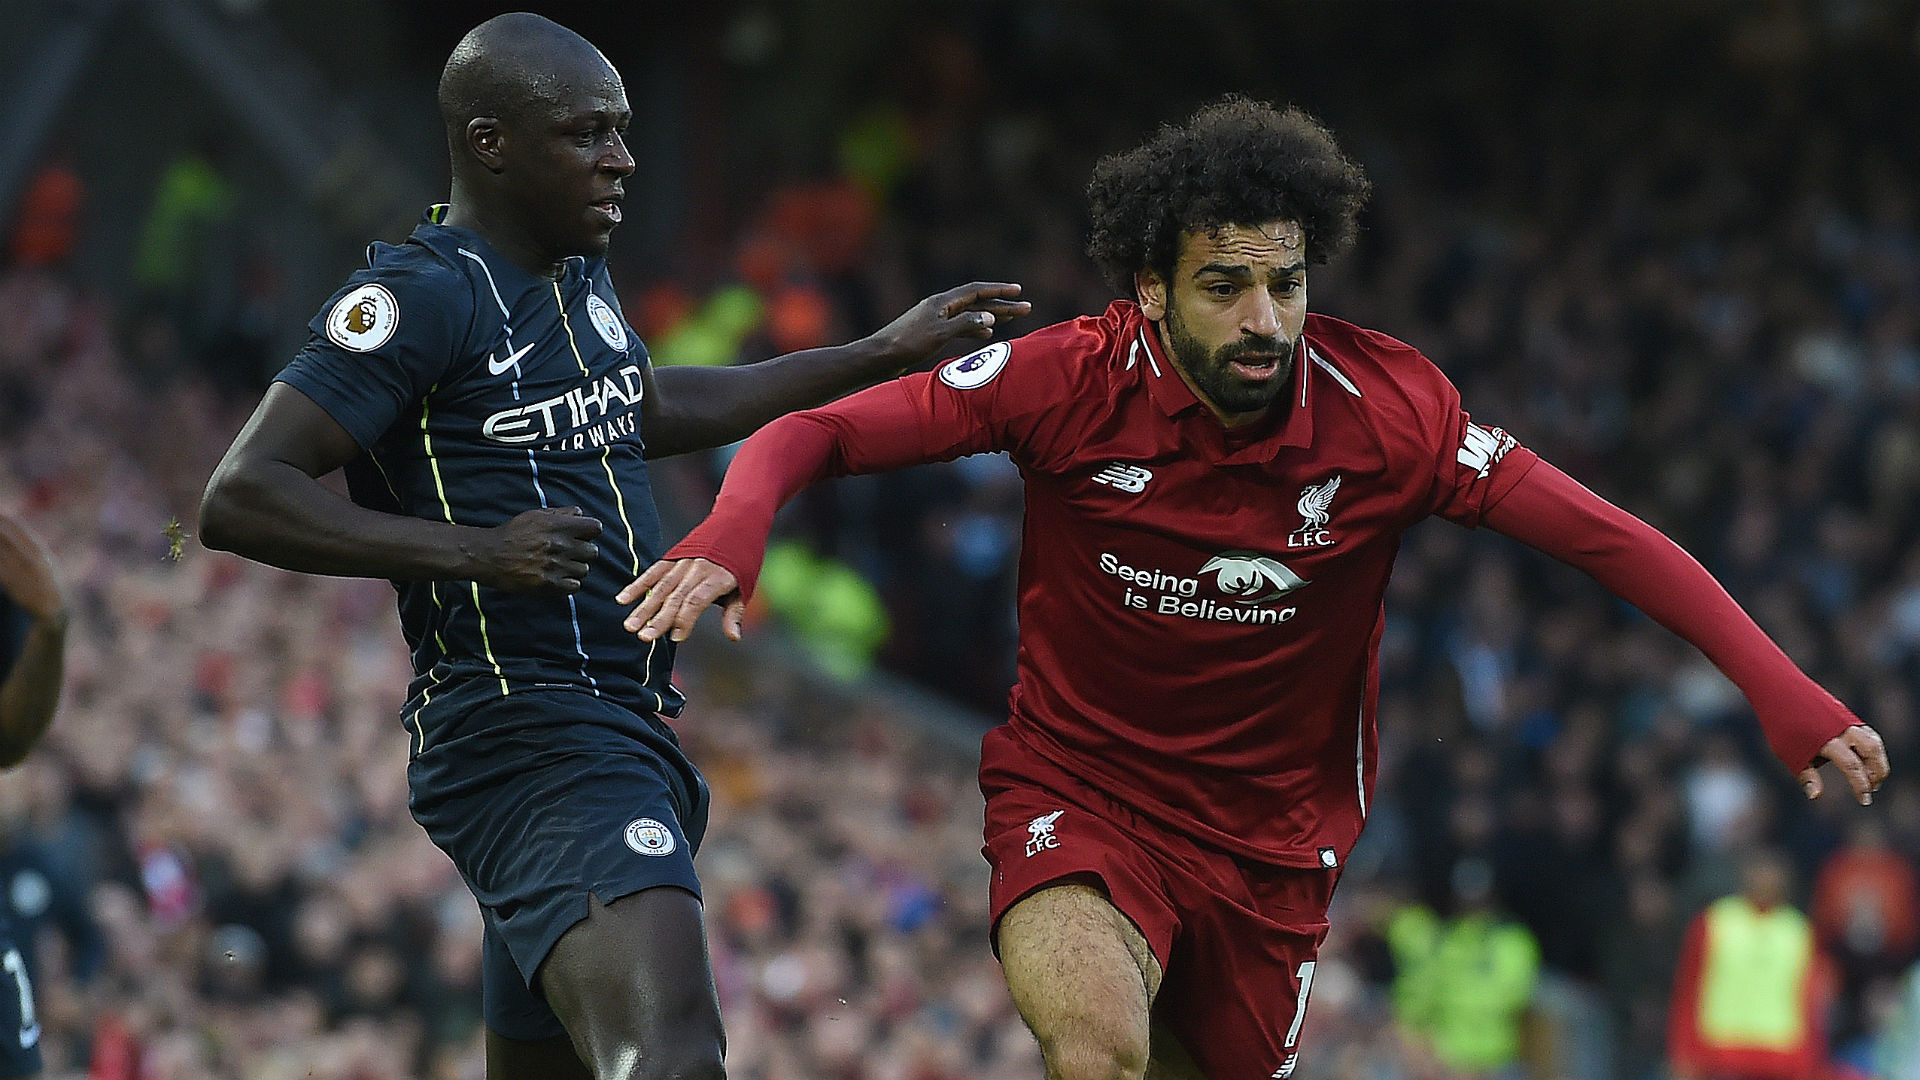 Liverpool 0-0 Manchester City: 3 things we learned